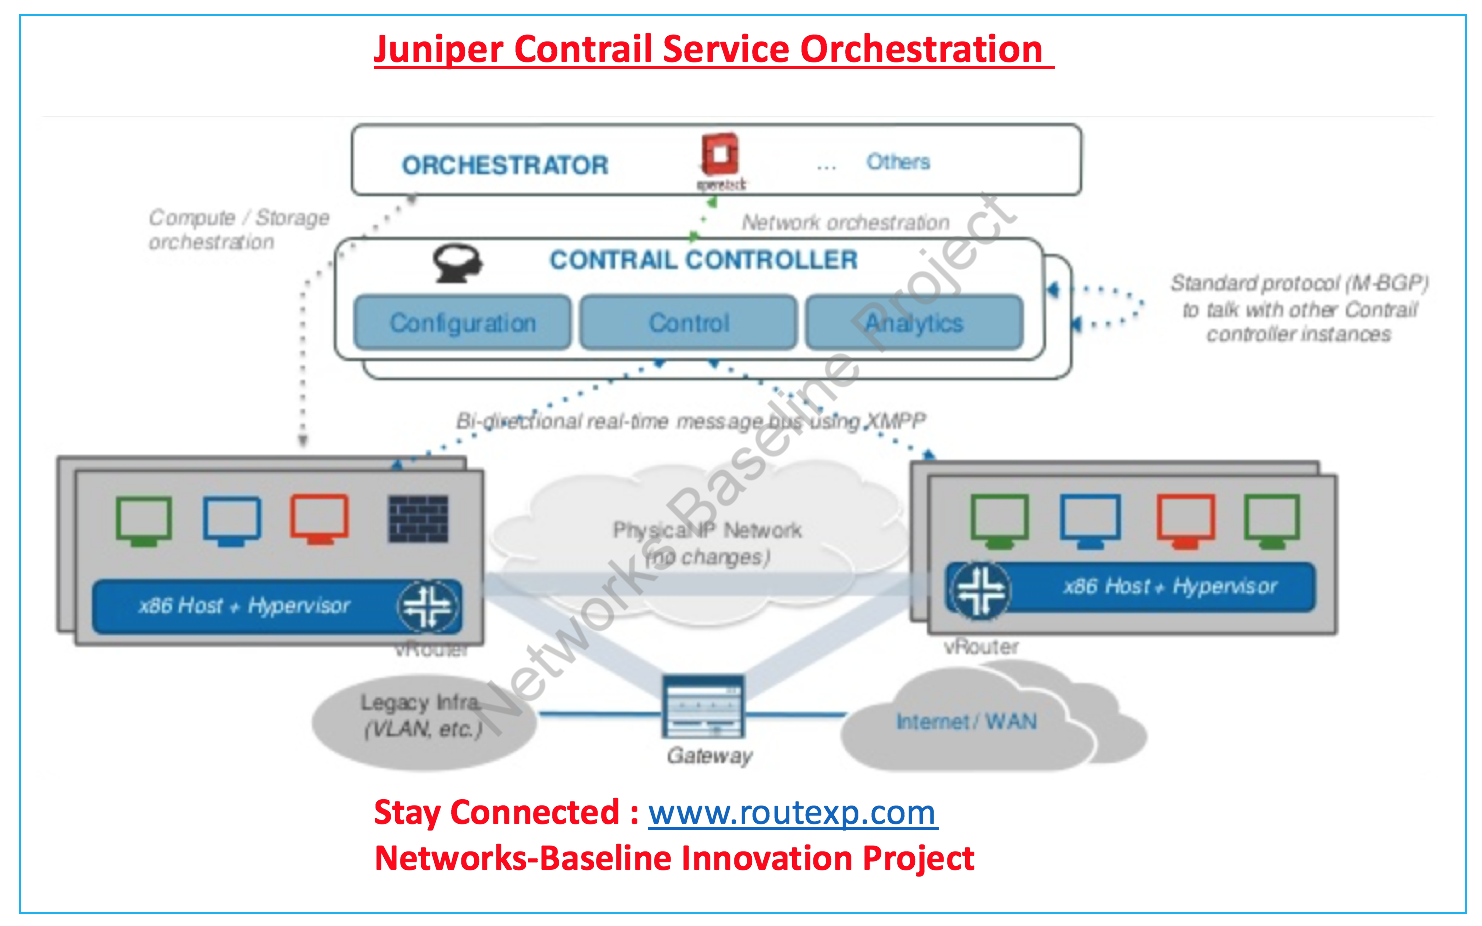 Introduction to Juniper Contrail Service Orchestration: SDWAN